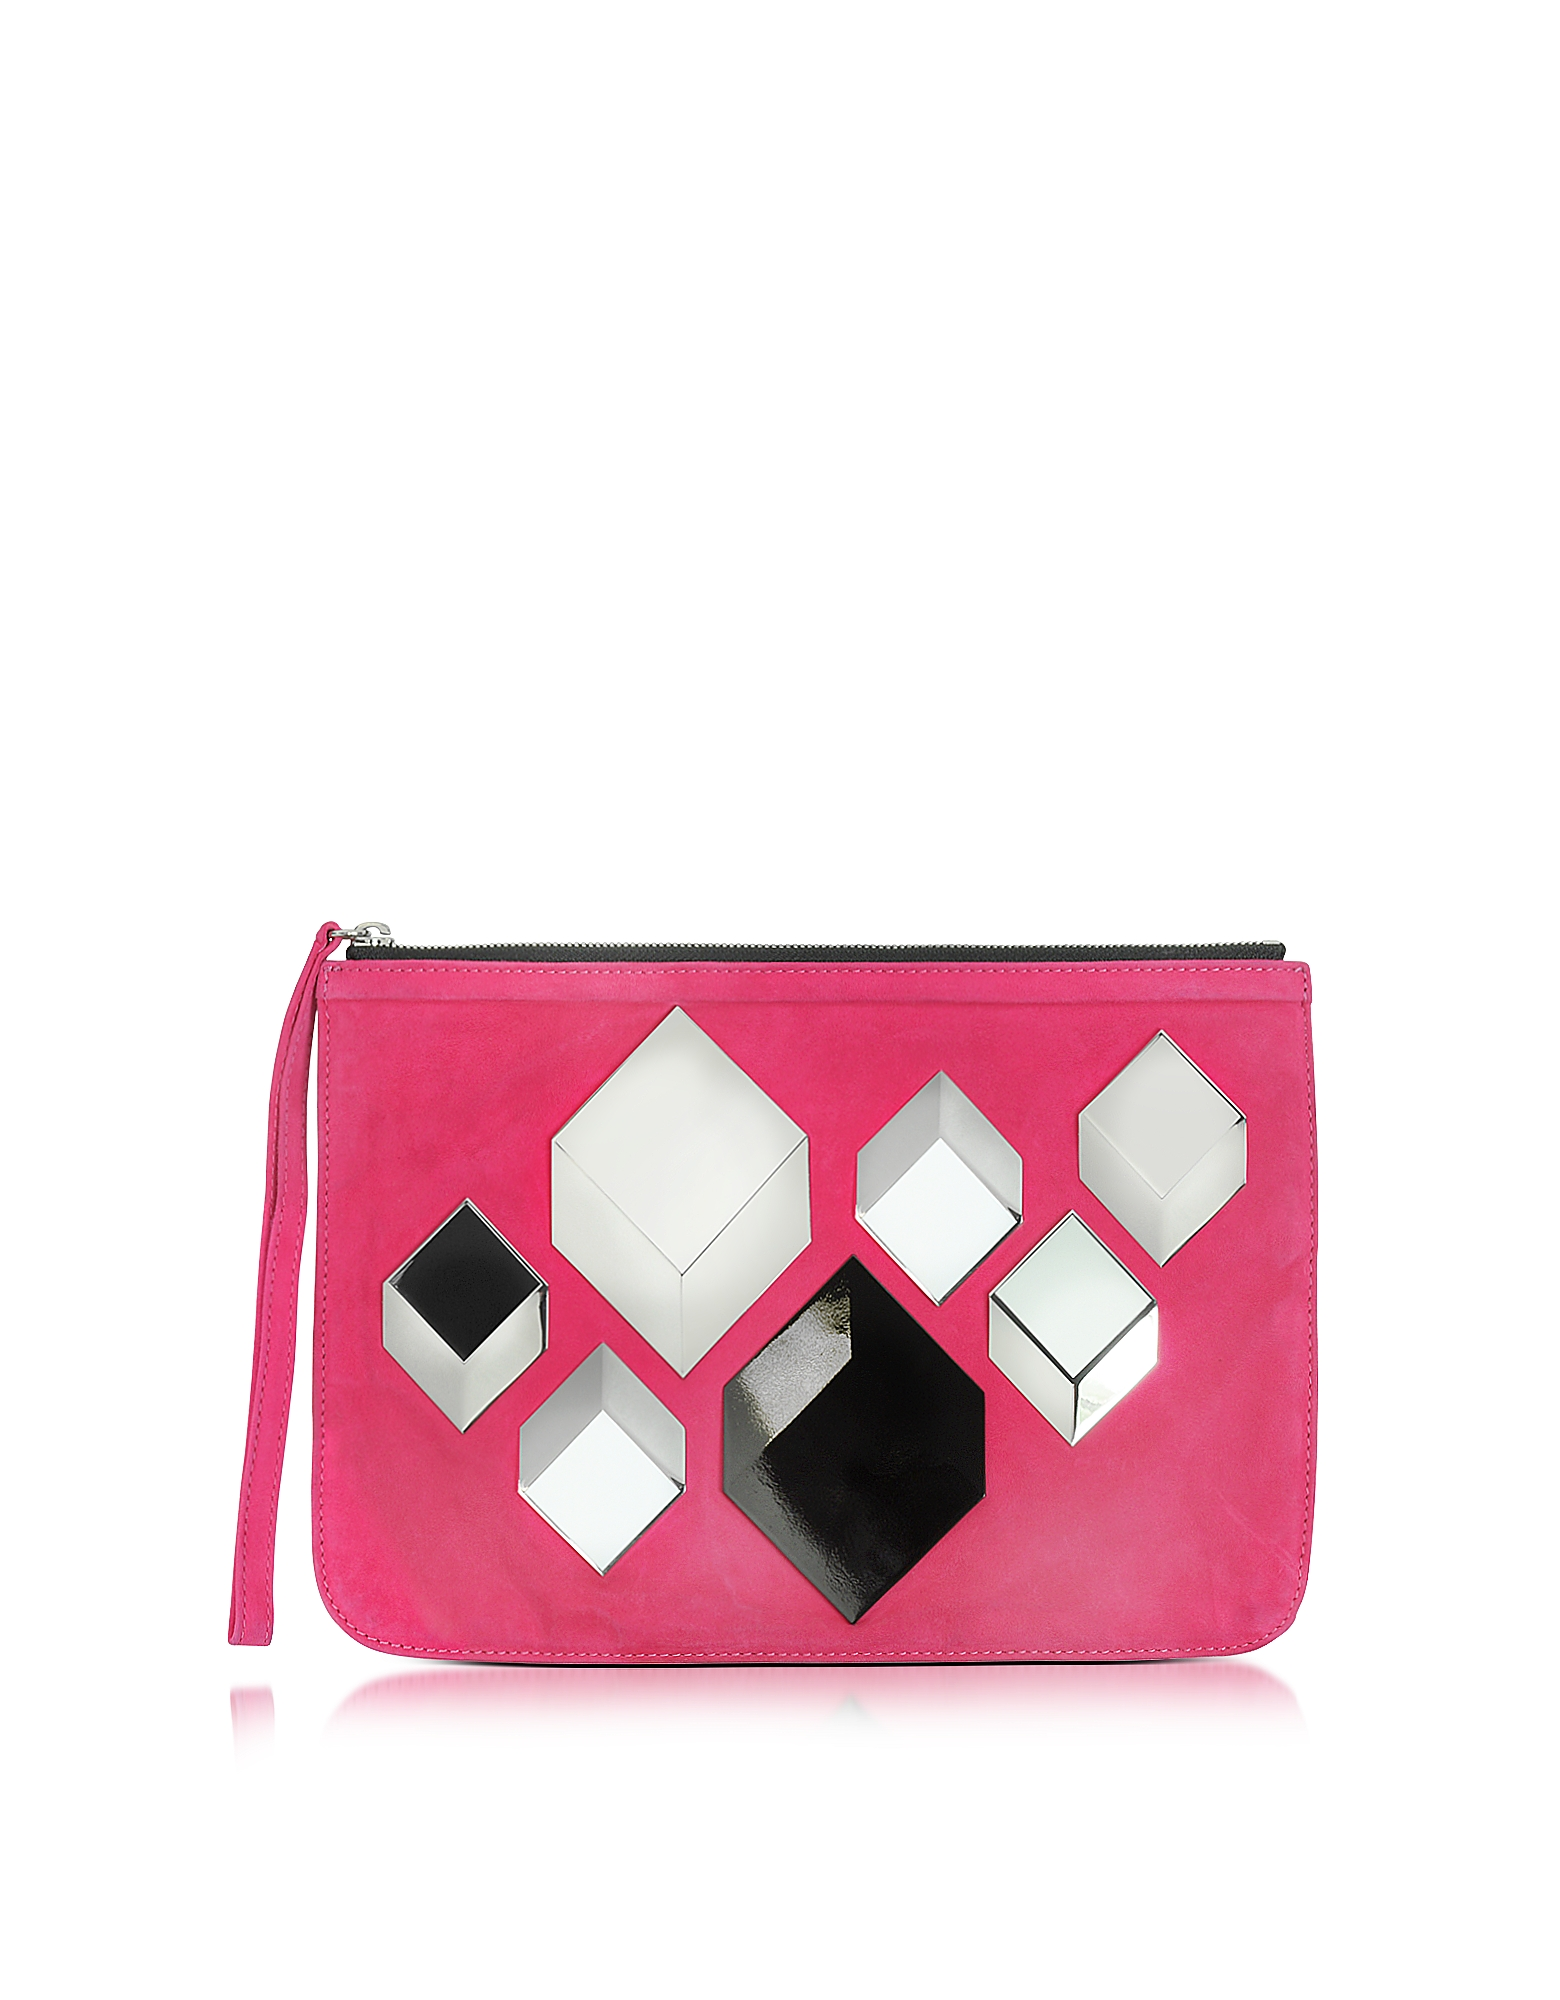 Pierre Hardy Designer Handbags, Cube Pink Suede Pouch (Luggage & Bags) photo